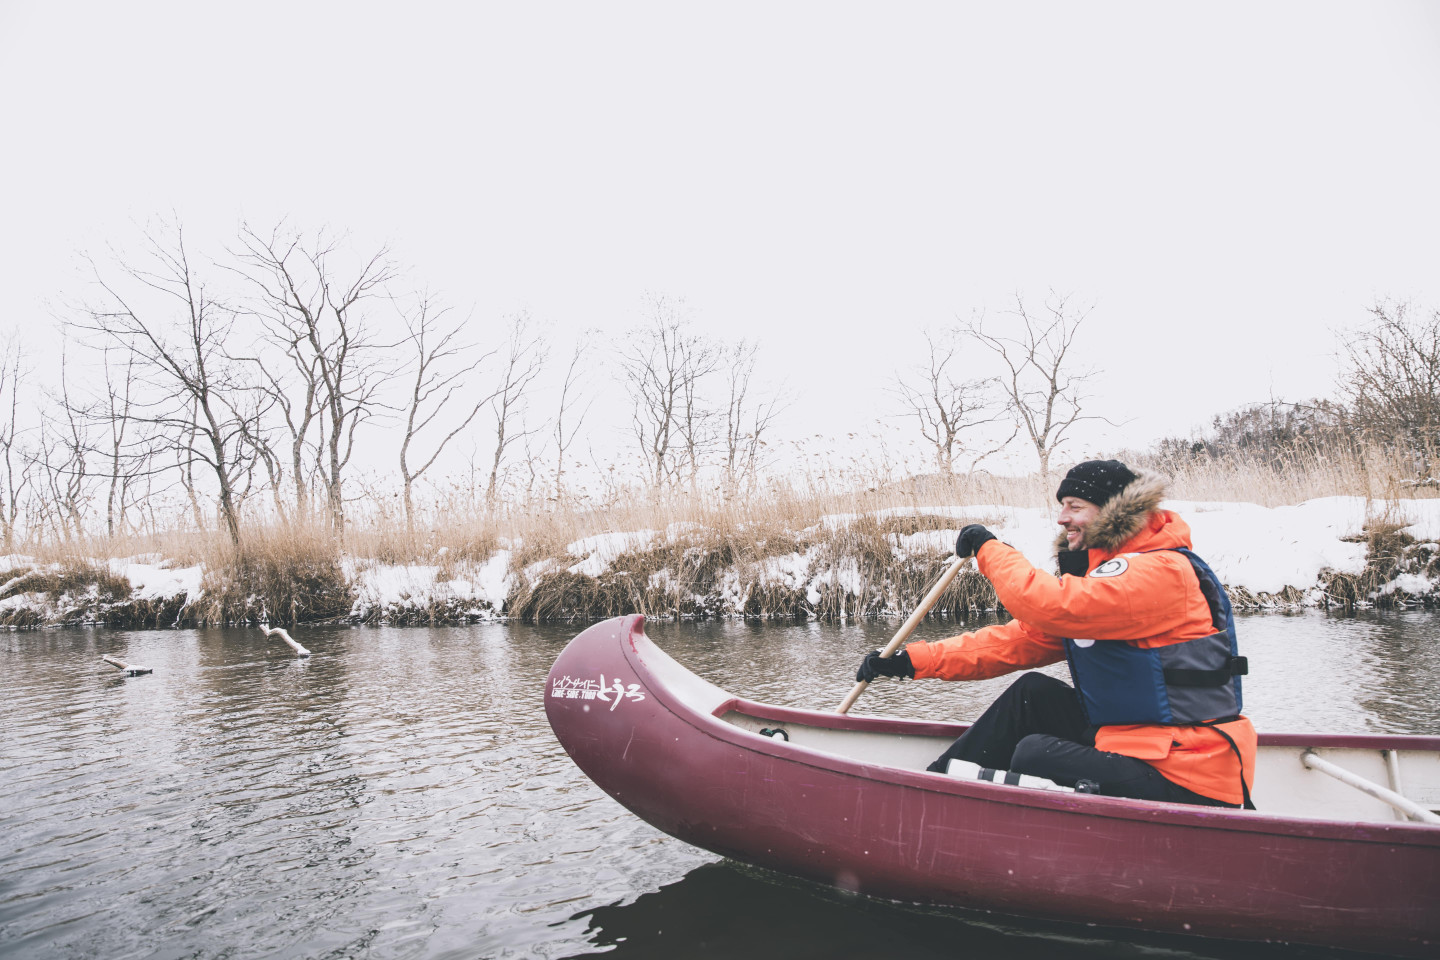 2. Gliding through Kushiro Wetland in a Canadian canoe